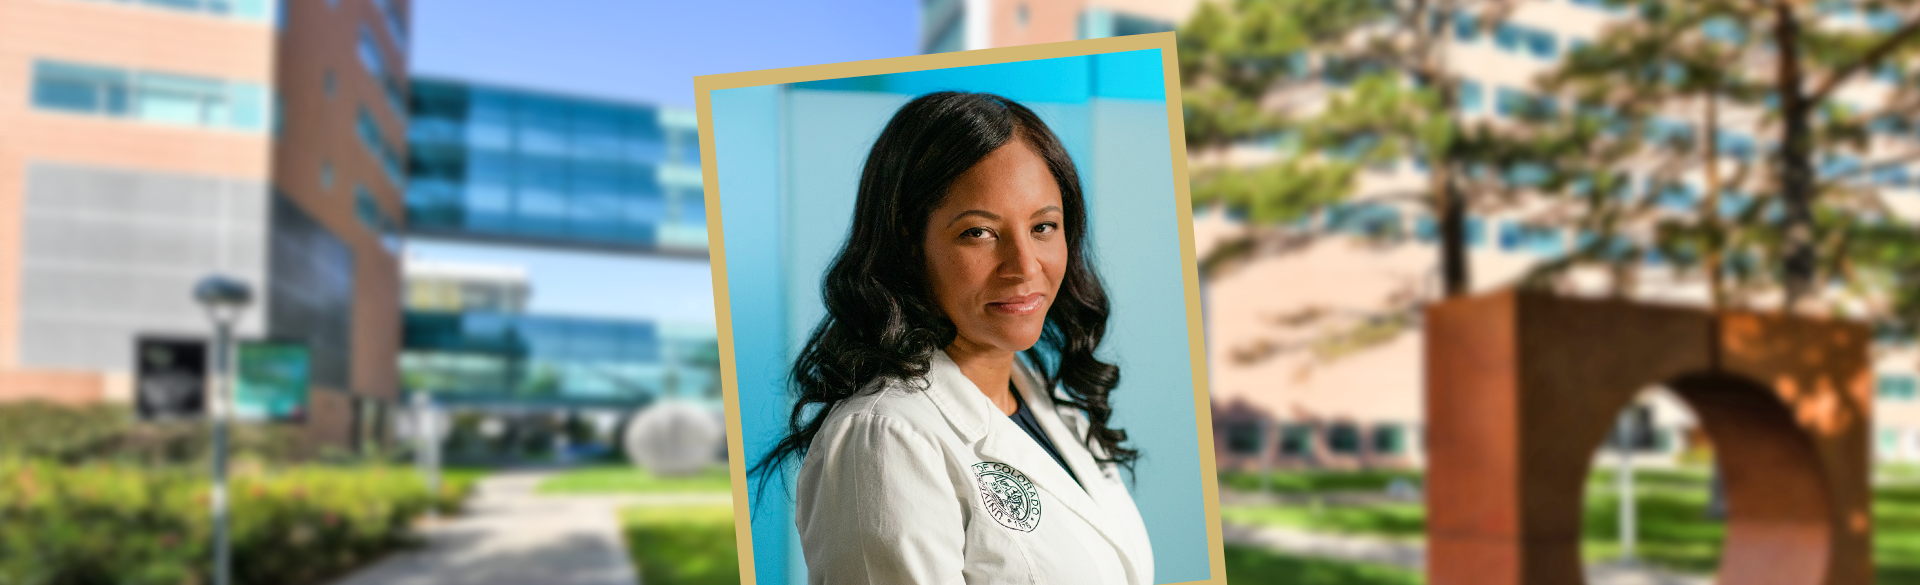 Kia Washington, MD - On a Mission to Create Meaningful Progress on Diversity and Inclusion